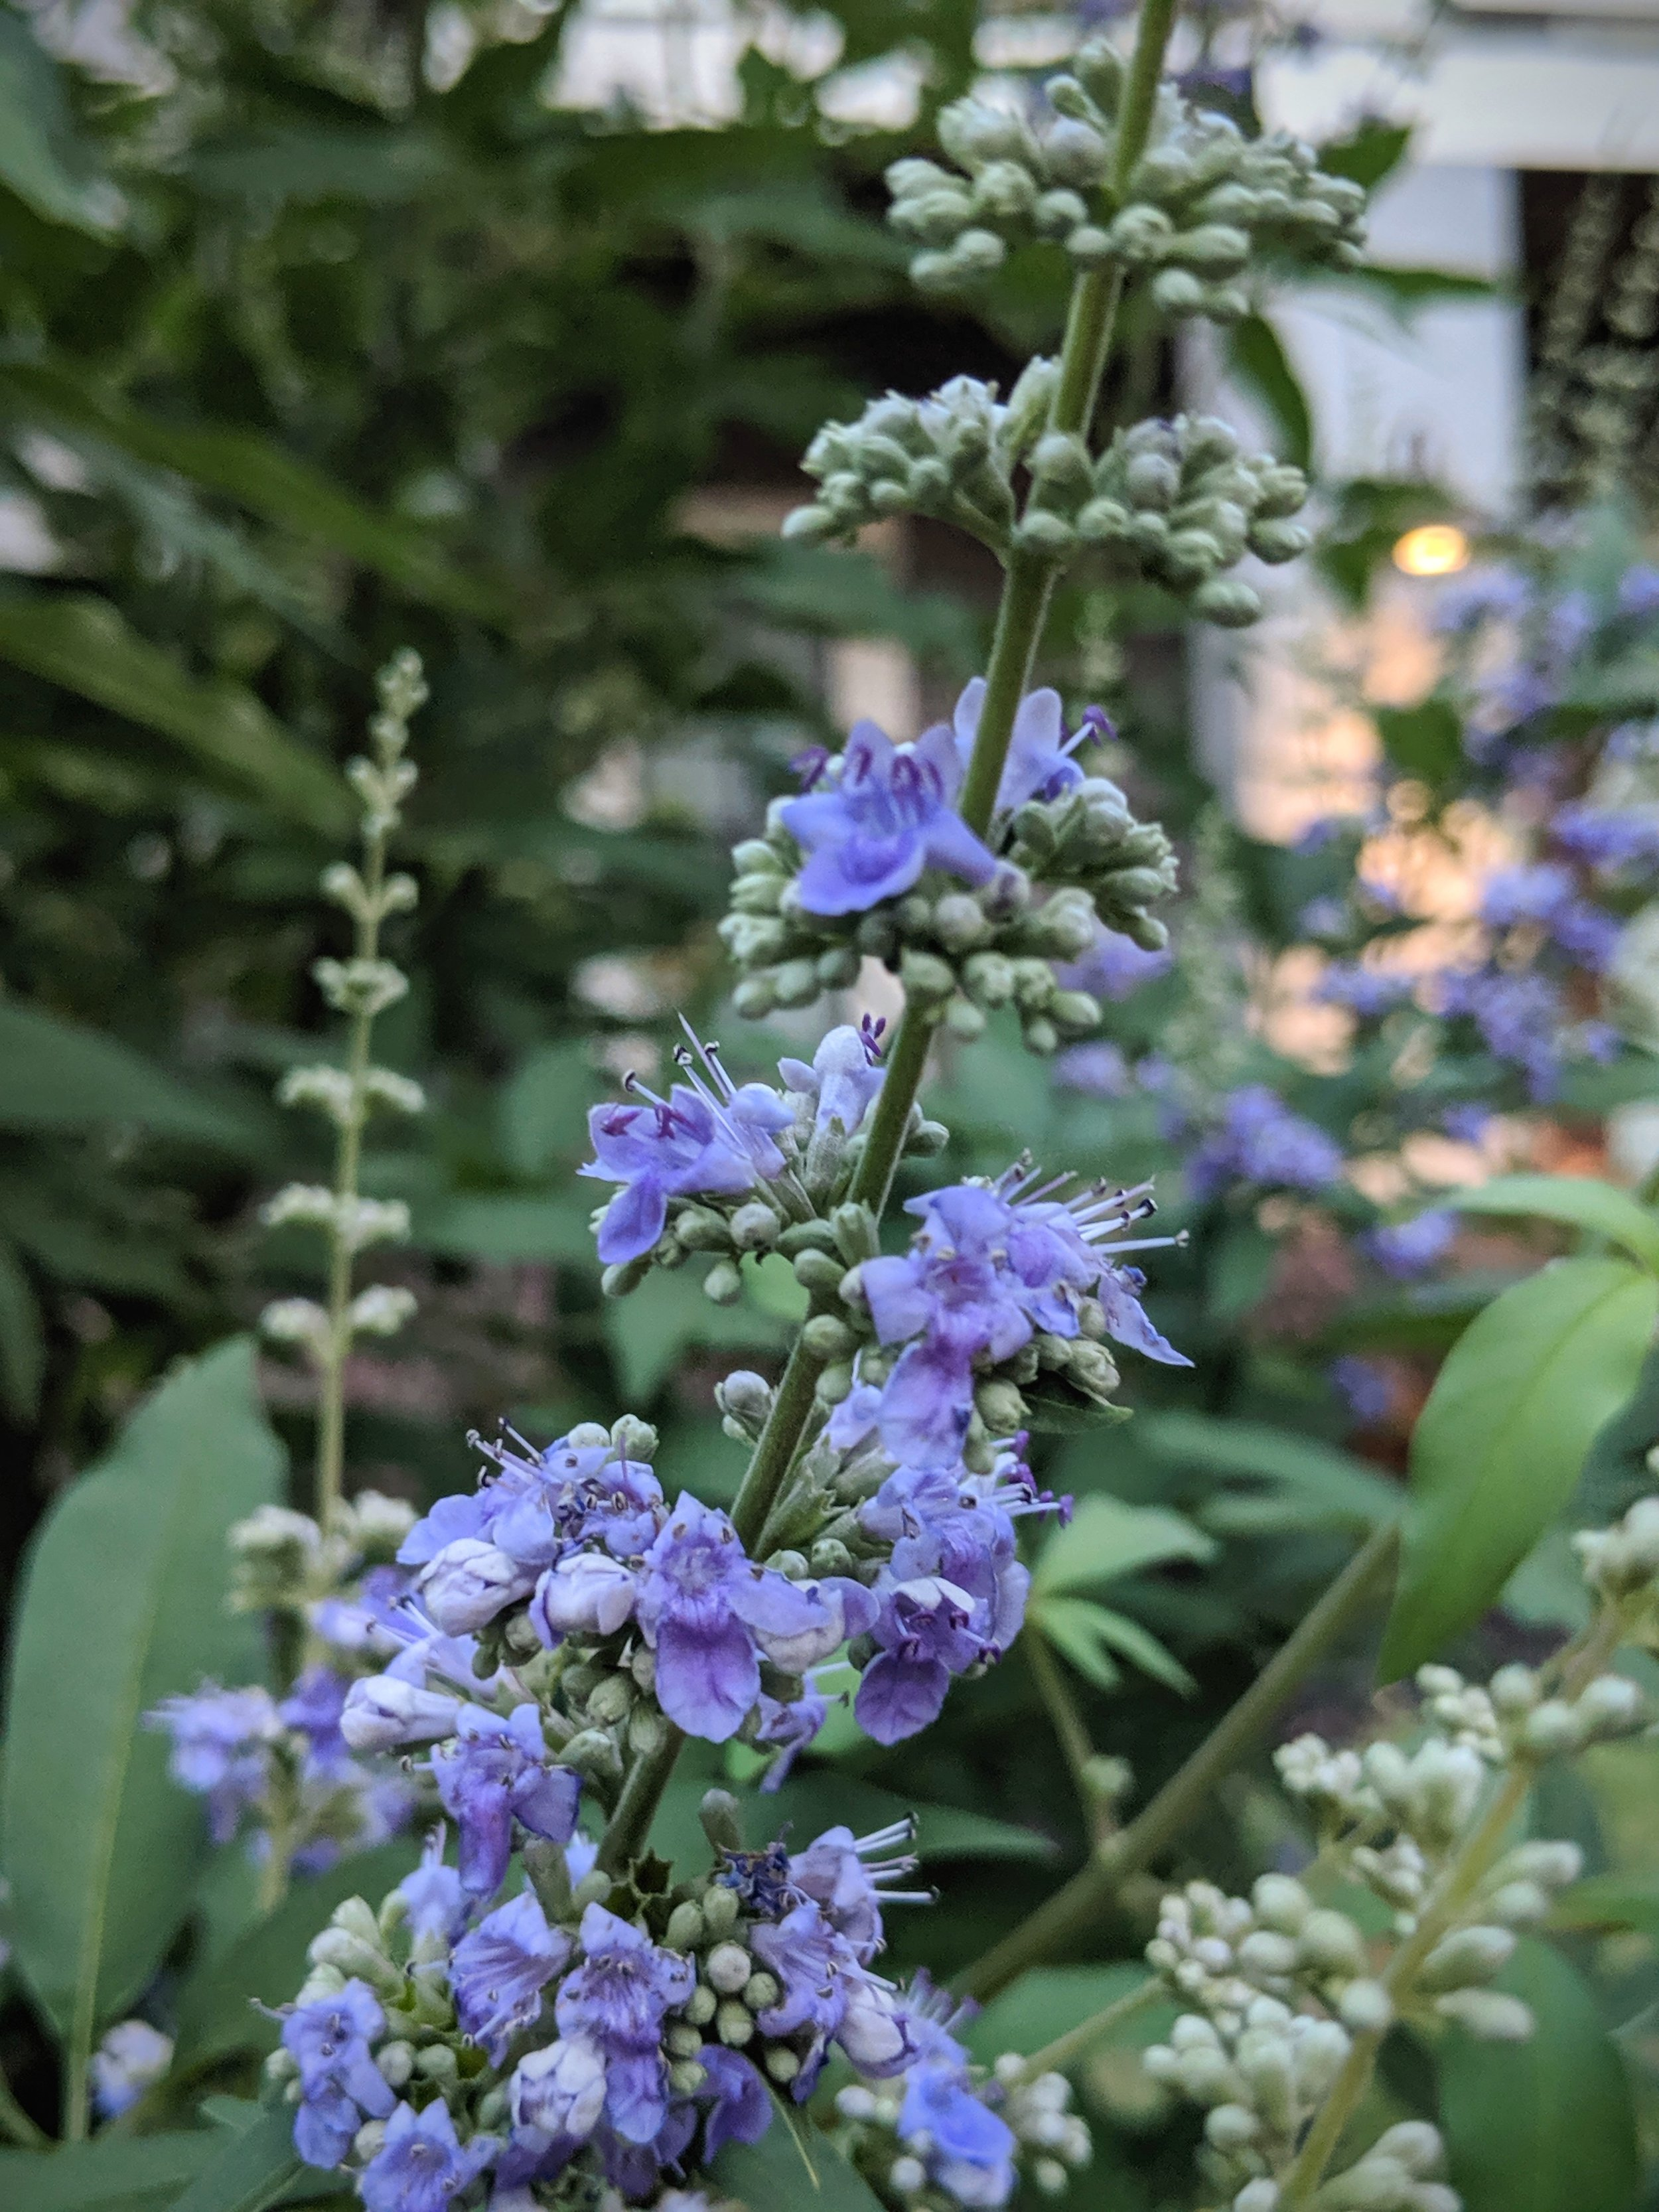 Pictured here is Vitex, one of our common herbal allies for hormonal health – I'm planning on writing a whole blog on Vitex so stay tuned!